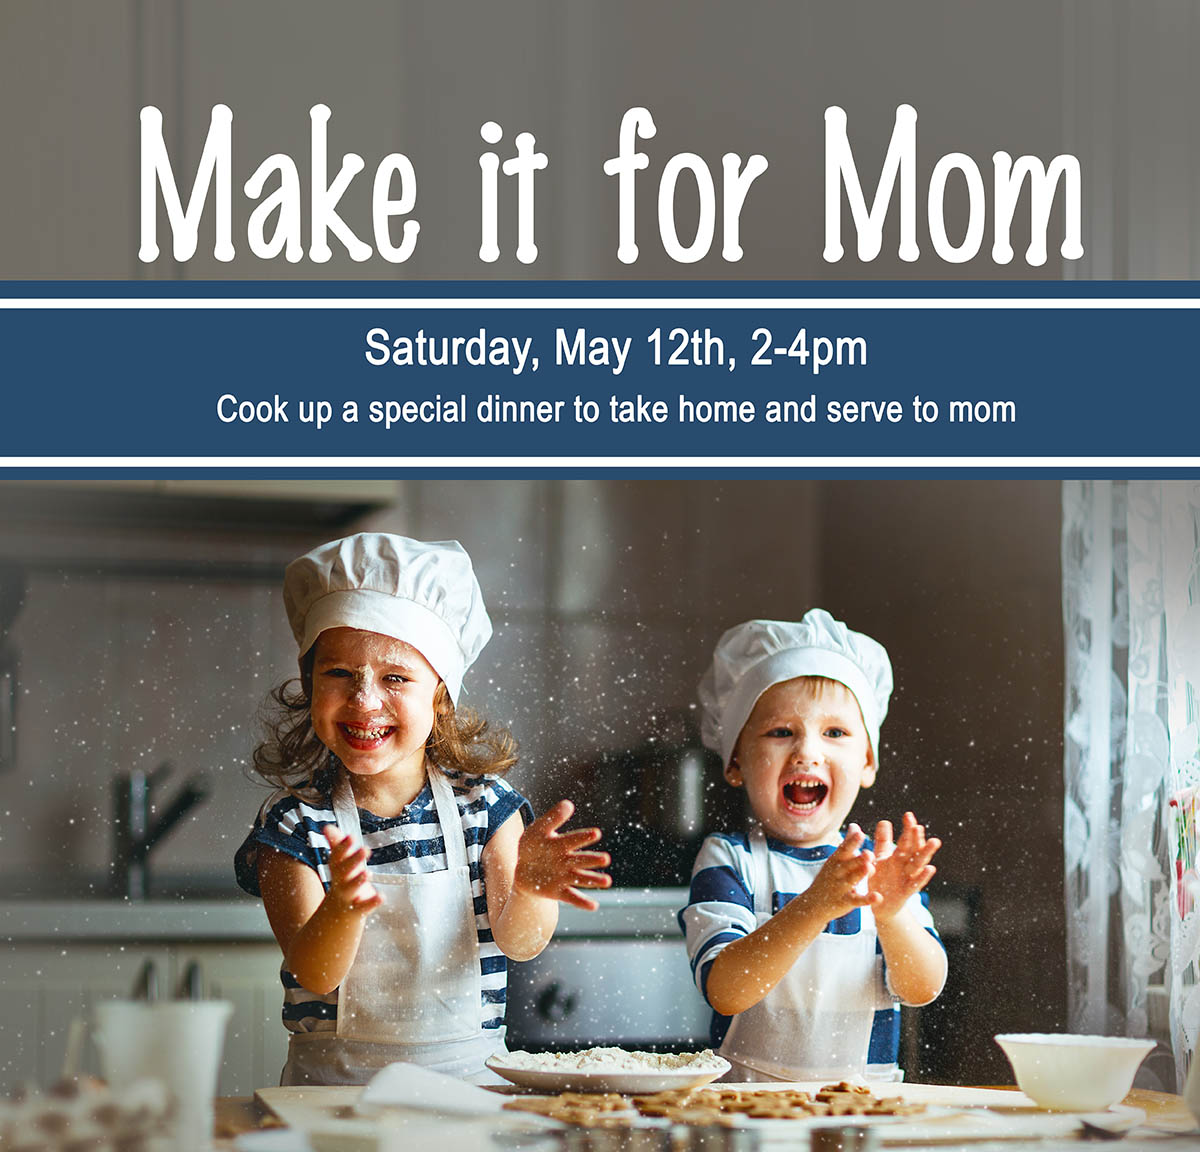 Make it for Mom Make Dinner and Craft for Free To Celebrate Mothers Day